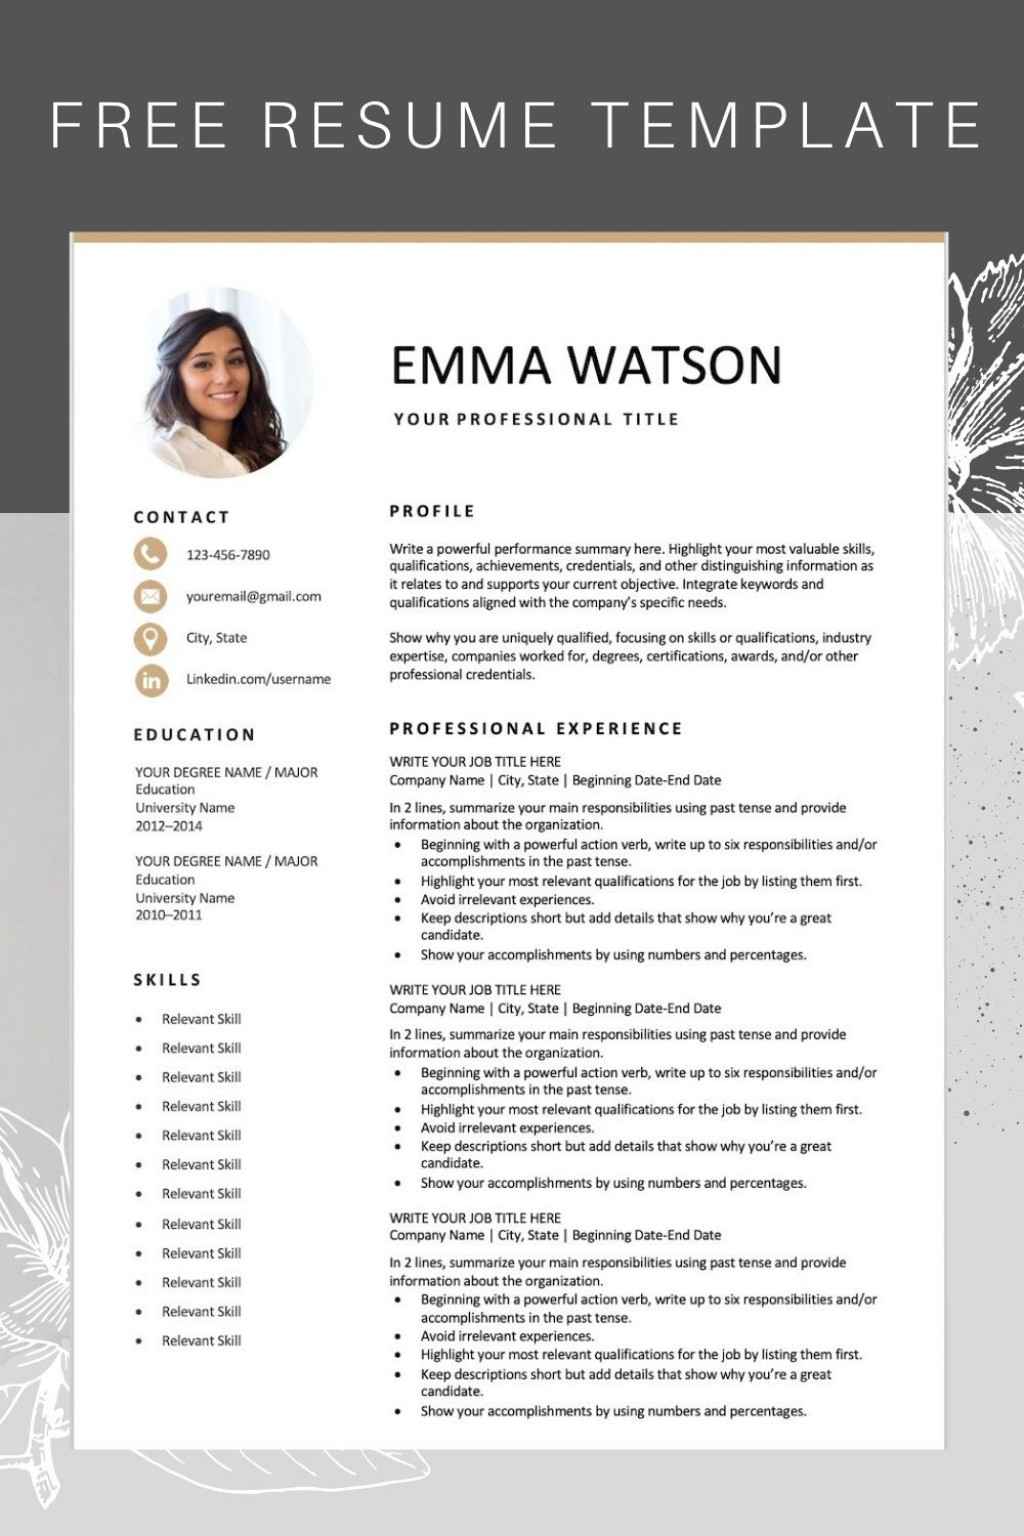 000 Wonderful Free Downloadable Resume Template Inspiration  Templates For Page Download Format Fresher PdfLarge